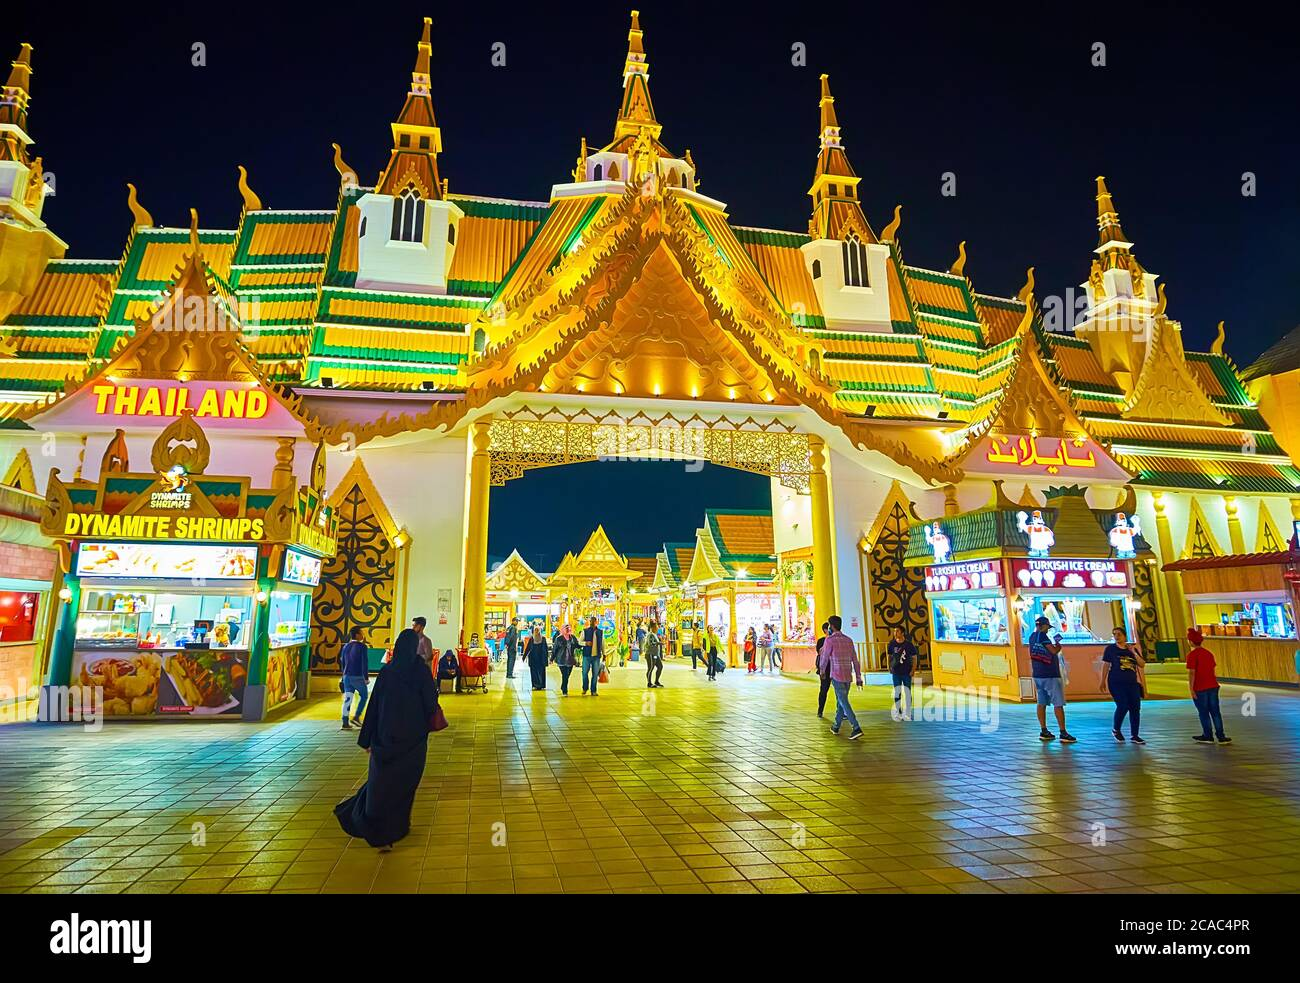 DUBAI, UAE - MARCH 5, 2020: The facade of Thailand Pavilions of Global Village Dubai with traditional pyathat (multitired) roof, topped with chedi tow Stock Photo